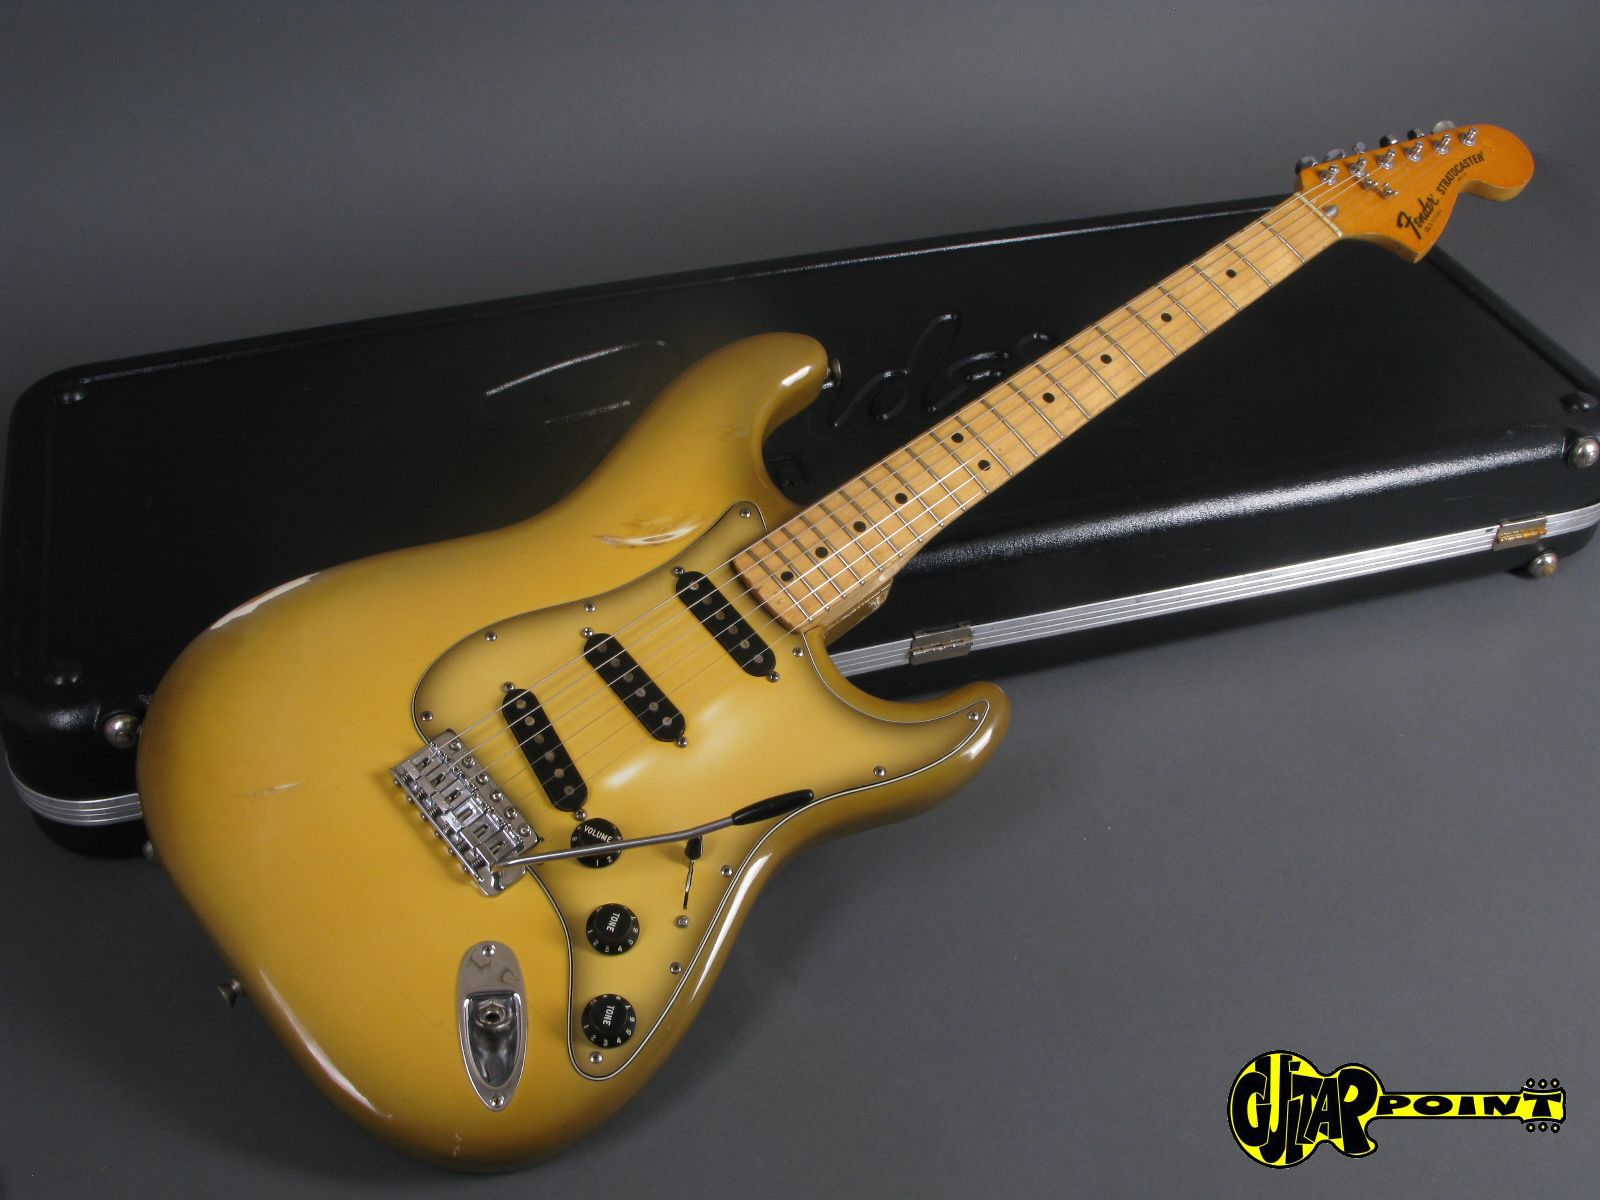 fender stratocaster 1979 antigua guitar for sale guitarpoint. Black Bedroom Furniture Sets. Home Design Ideas